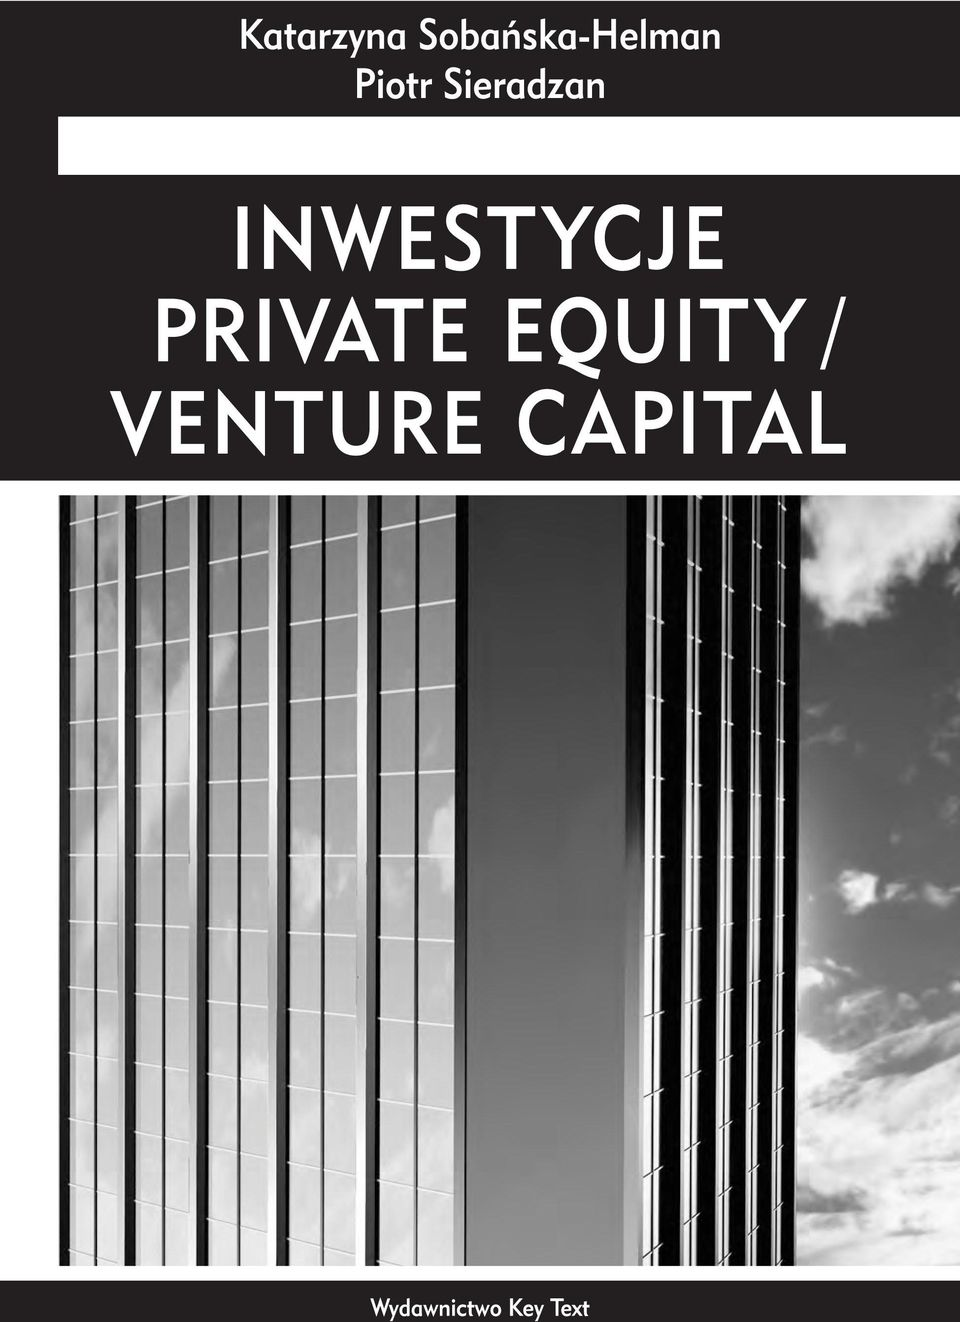 PRIVATE EQUITY / VENTURE